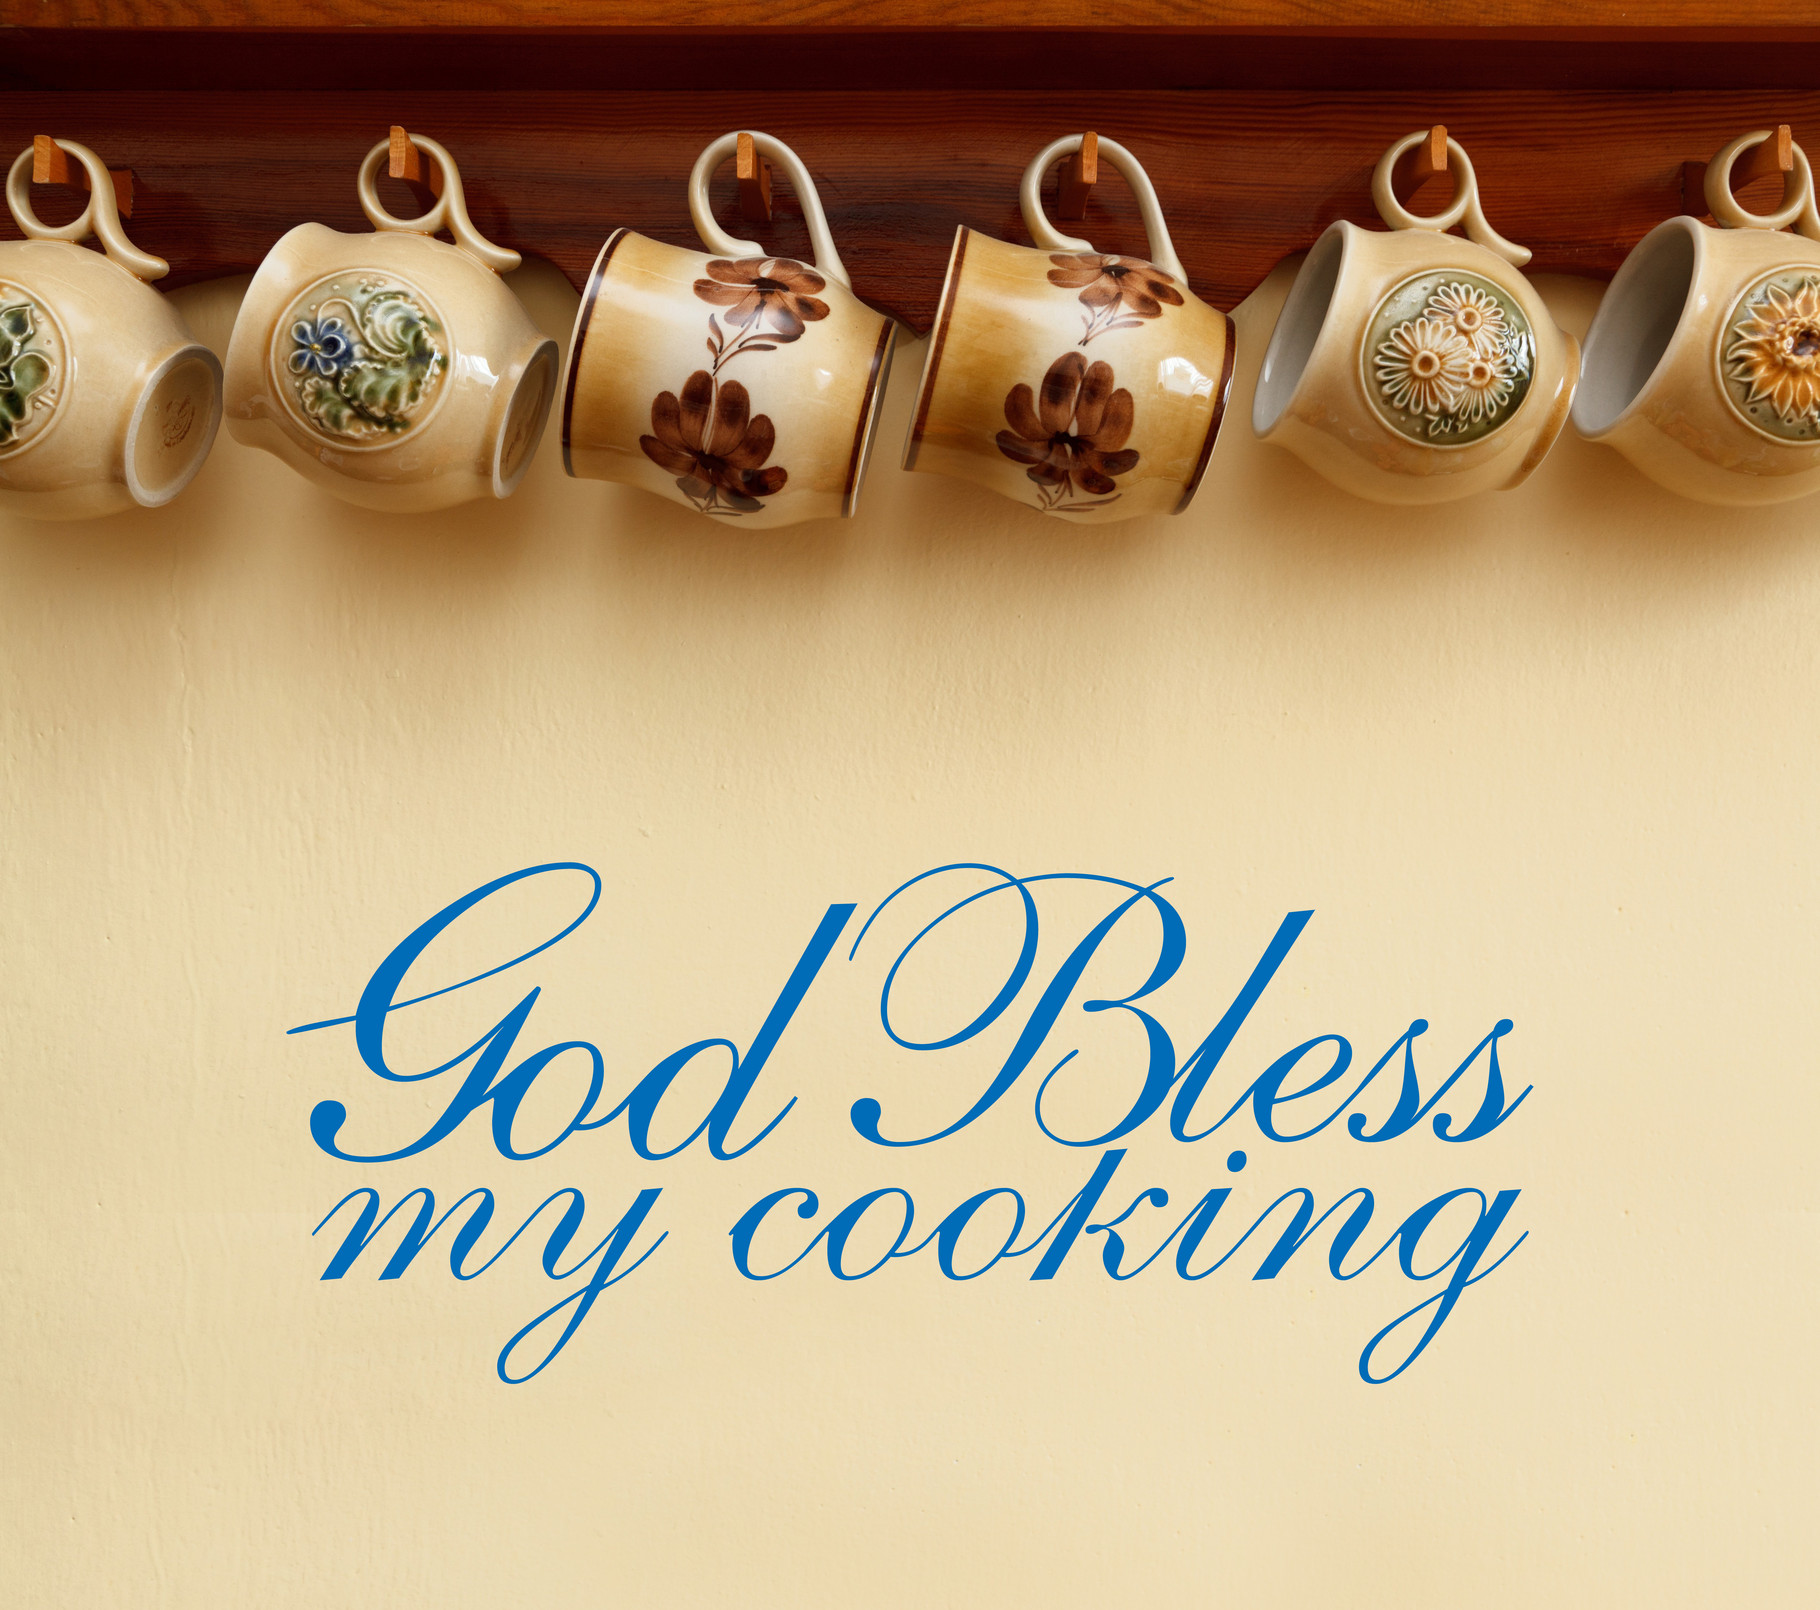 God Bless My Cooking | quote | sticker - Wall Art Company